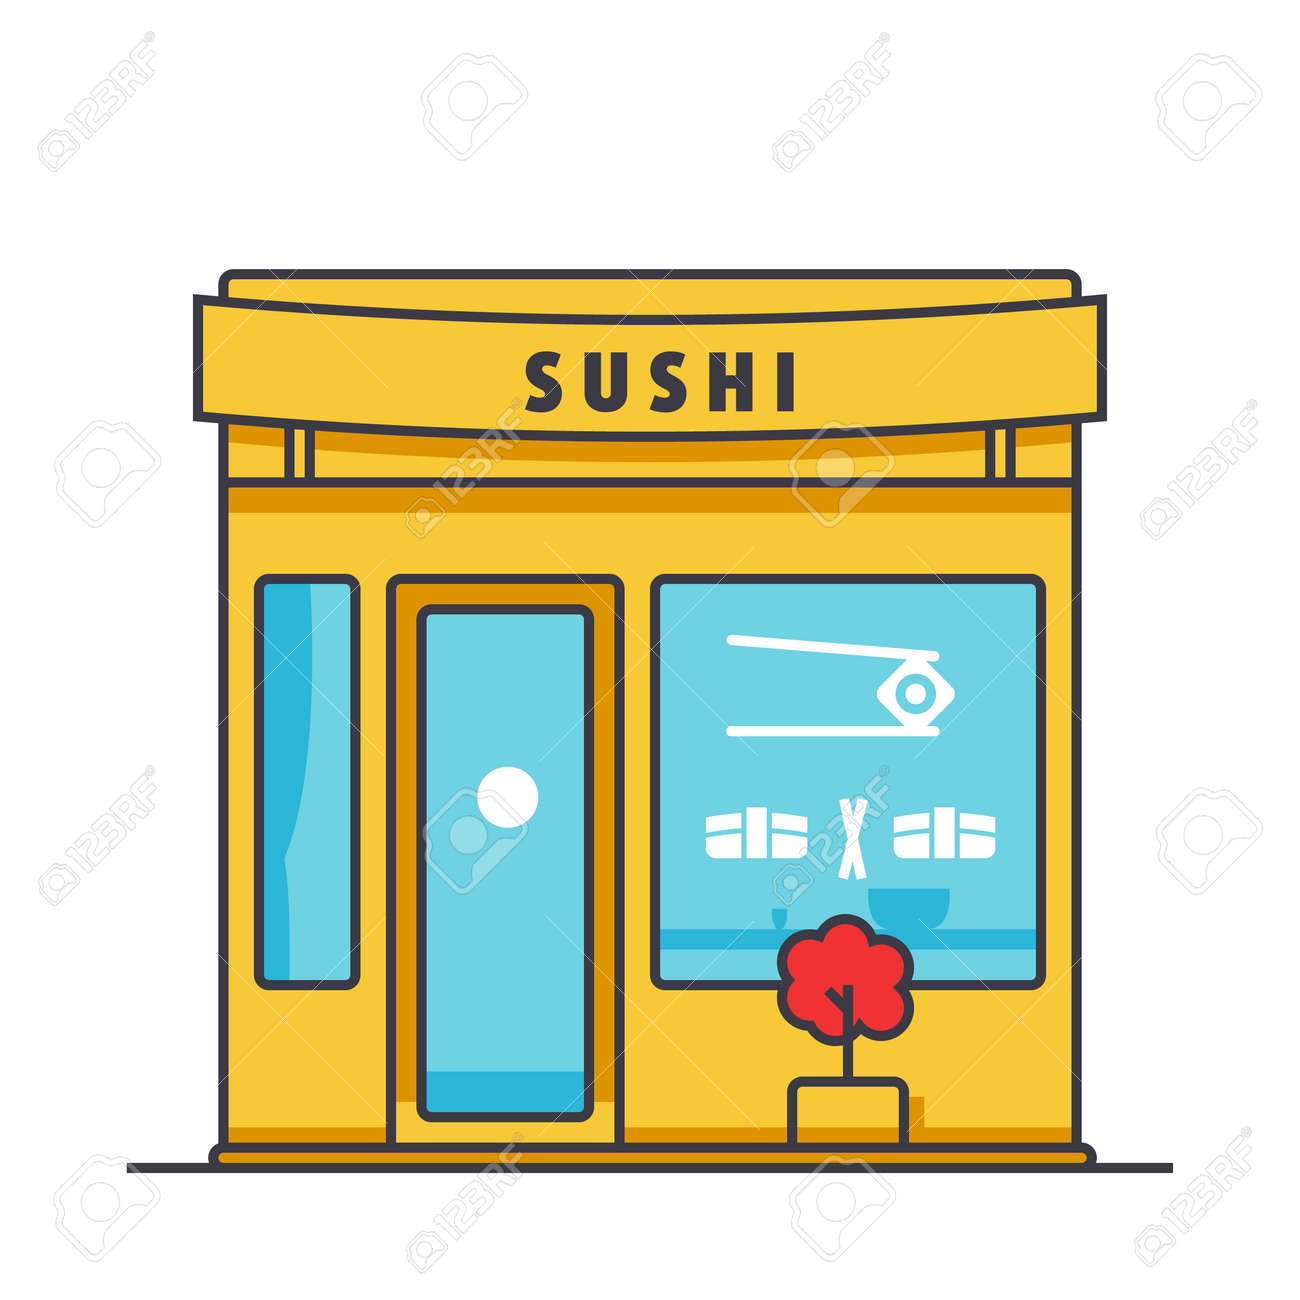 Sushi Restaurant Building Flat Line Illustration Concept Vector Royalty Free Cliparts Vectors And Stock Illustration Image 86035084